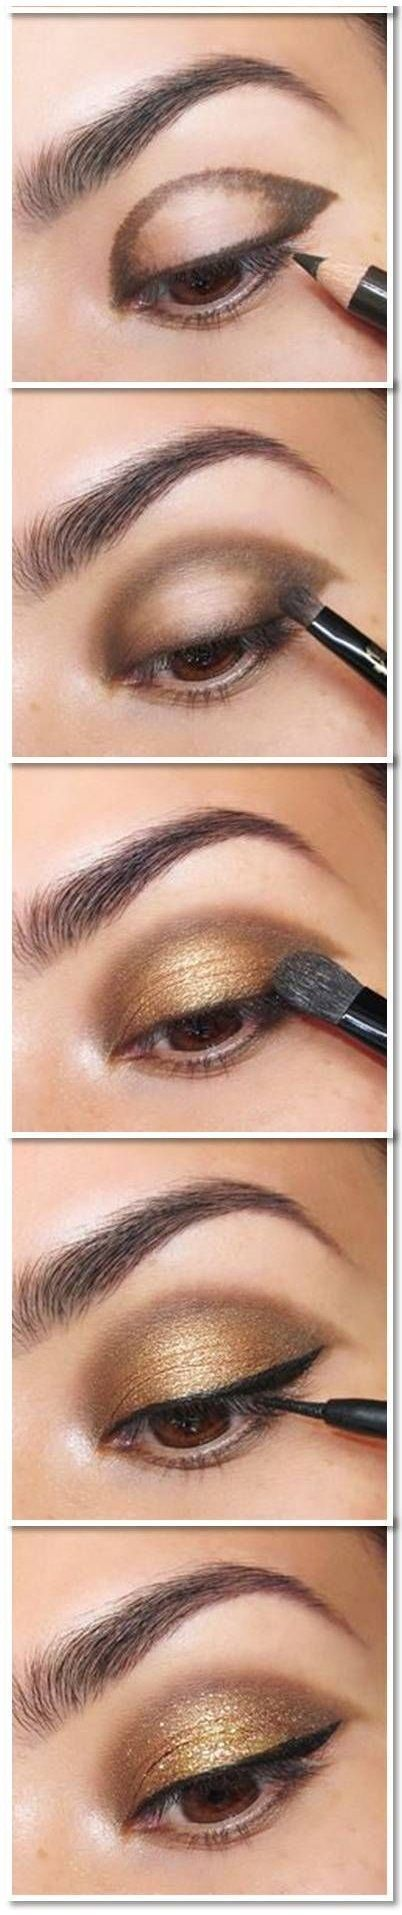 13 Of The Best Eyeshadow Tutorials For Brown Eyes | | How To Apply Eyeshadow and Eye Shadow Tips at Makeup Tutorials. | #makeuptutorials | makeuptutorials.com